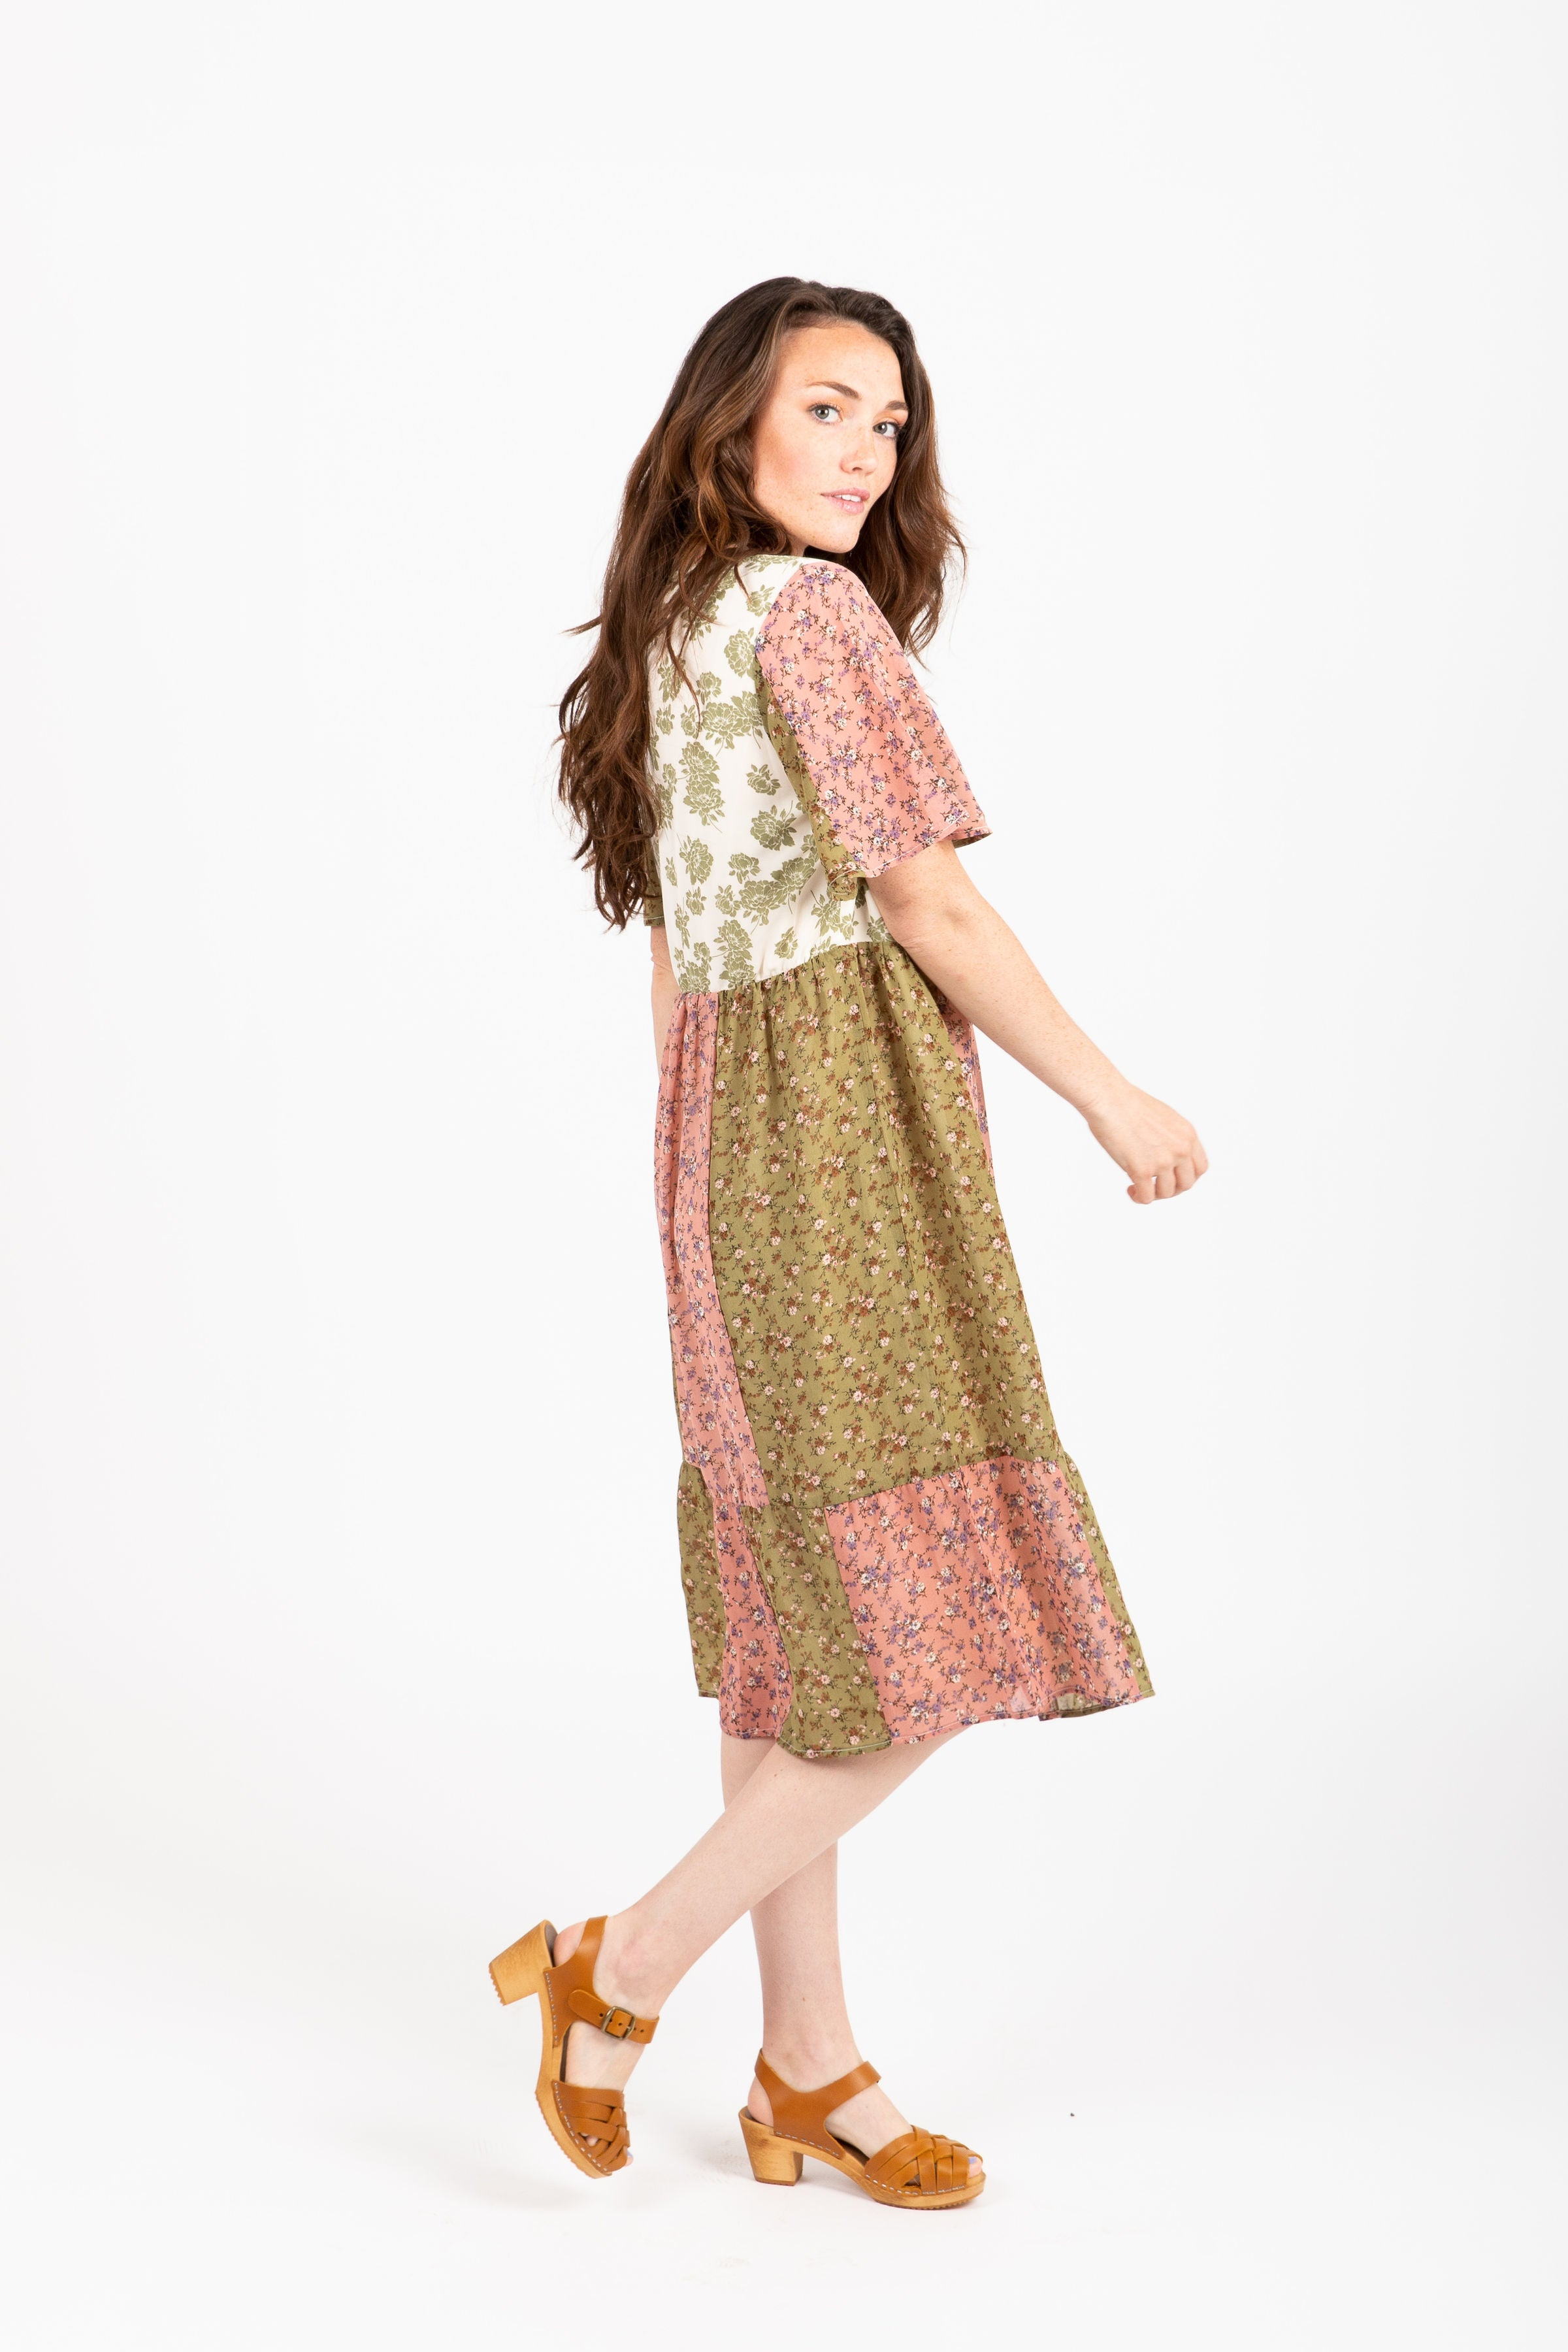 Piper & Scoot: The Muriel Mixed Floral Dress in Sage